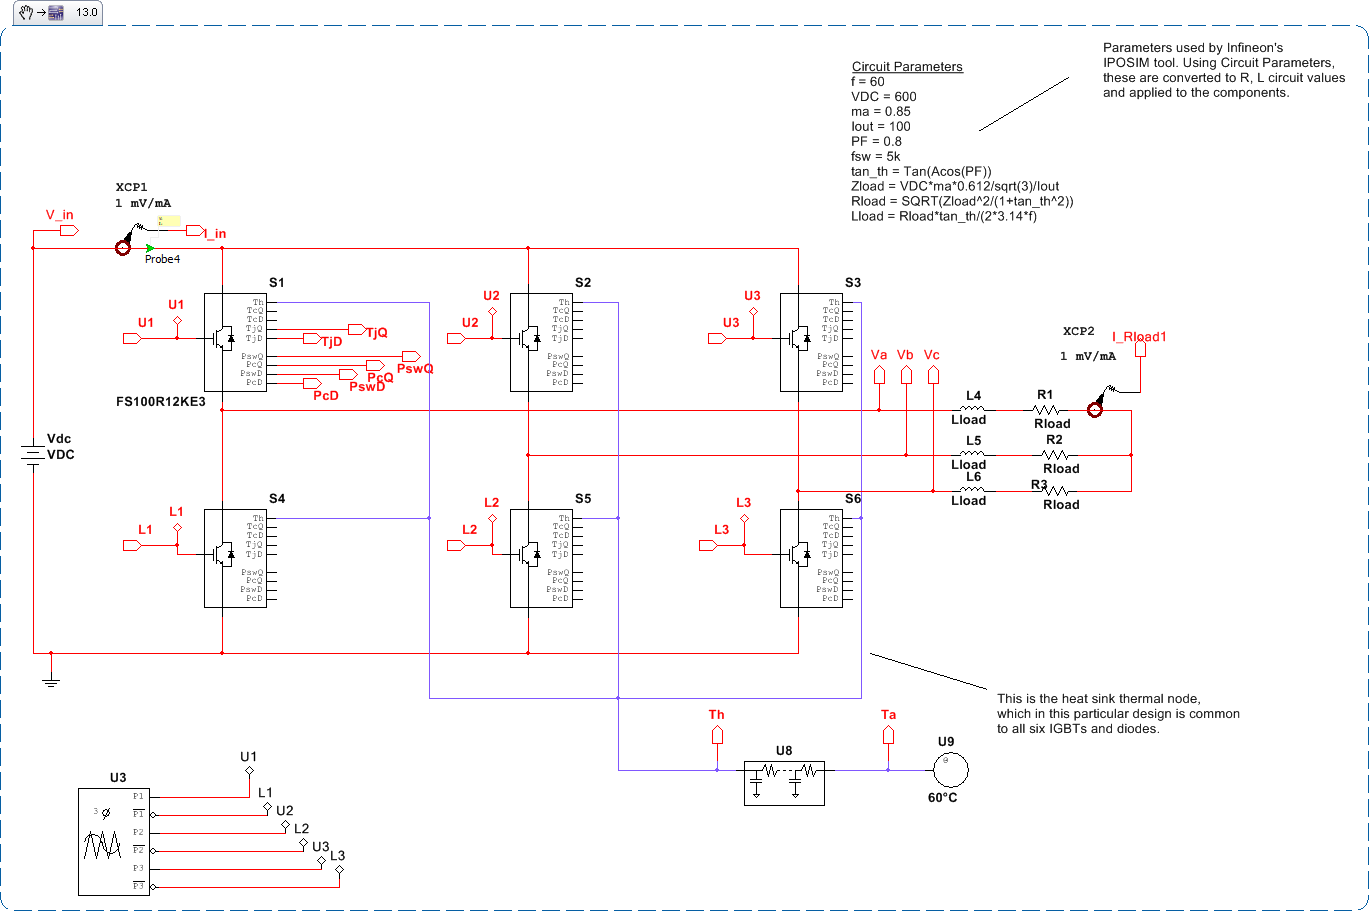 simple electronic chopper wiring diagram with Dsp Inverter Circuit Diagram on Showthread likewise Area Code 832 Location furthermore Cafe Racer Wiring together with Simple Motorcycle Wiring Diagram For Choppers And Cafe Racers in addition 645192 Wiring Help Needed.